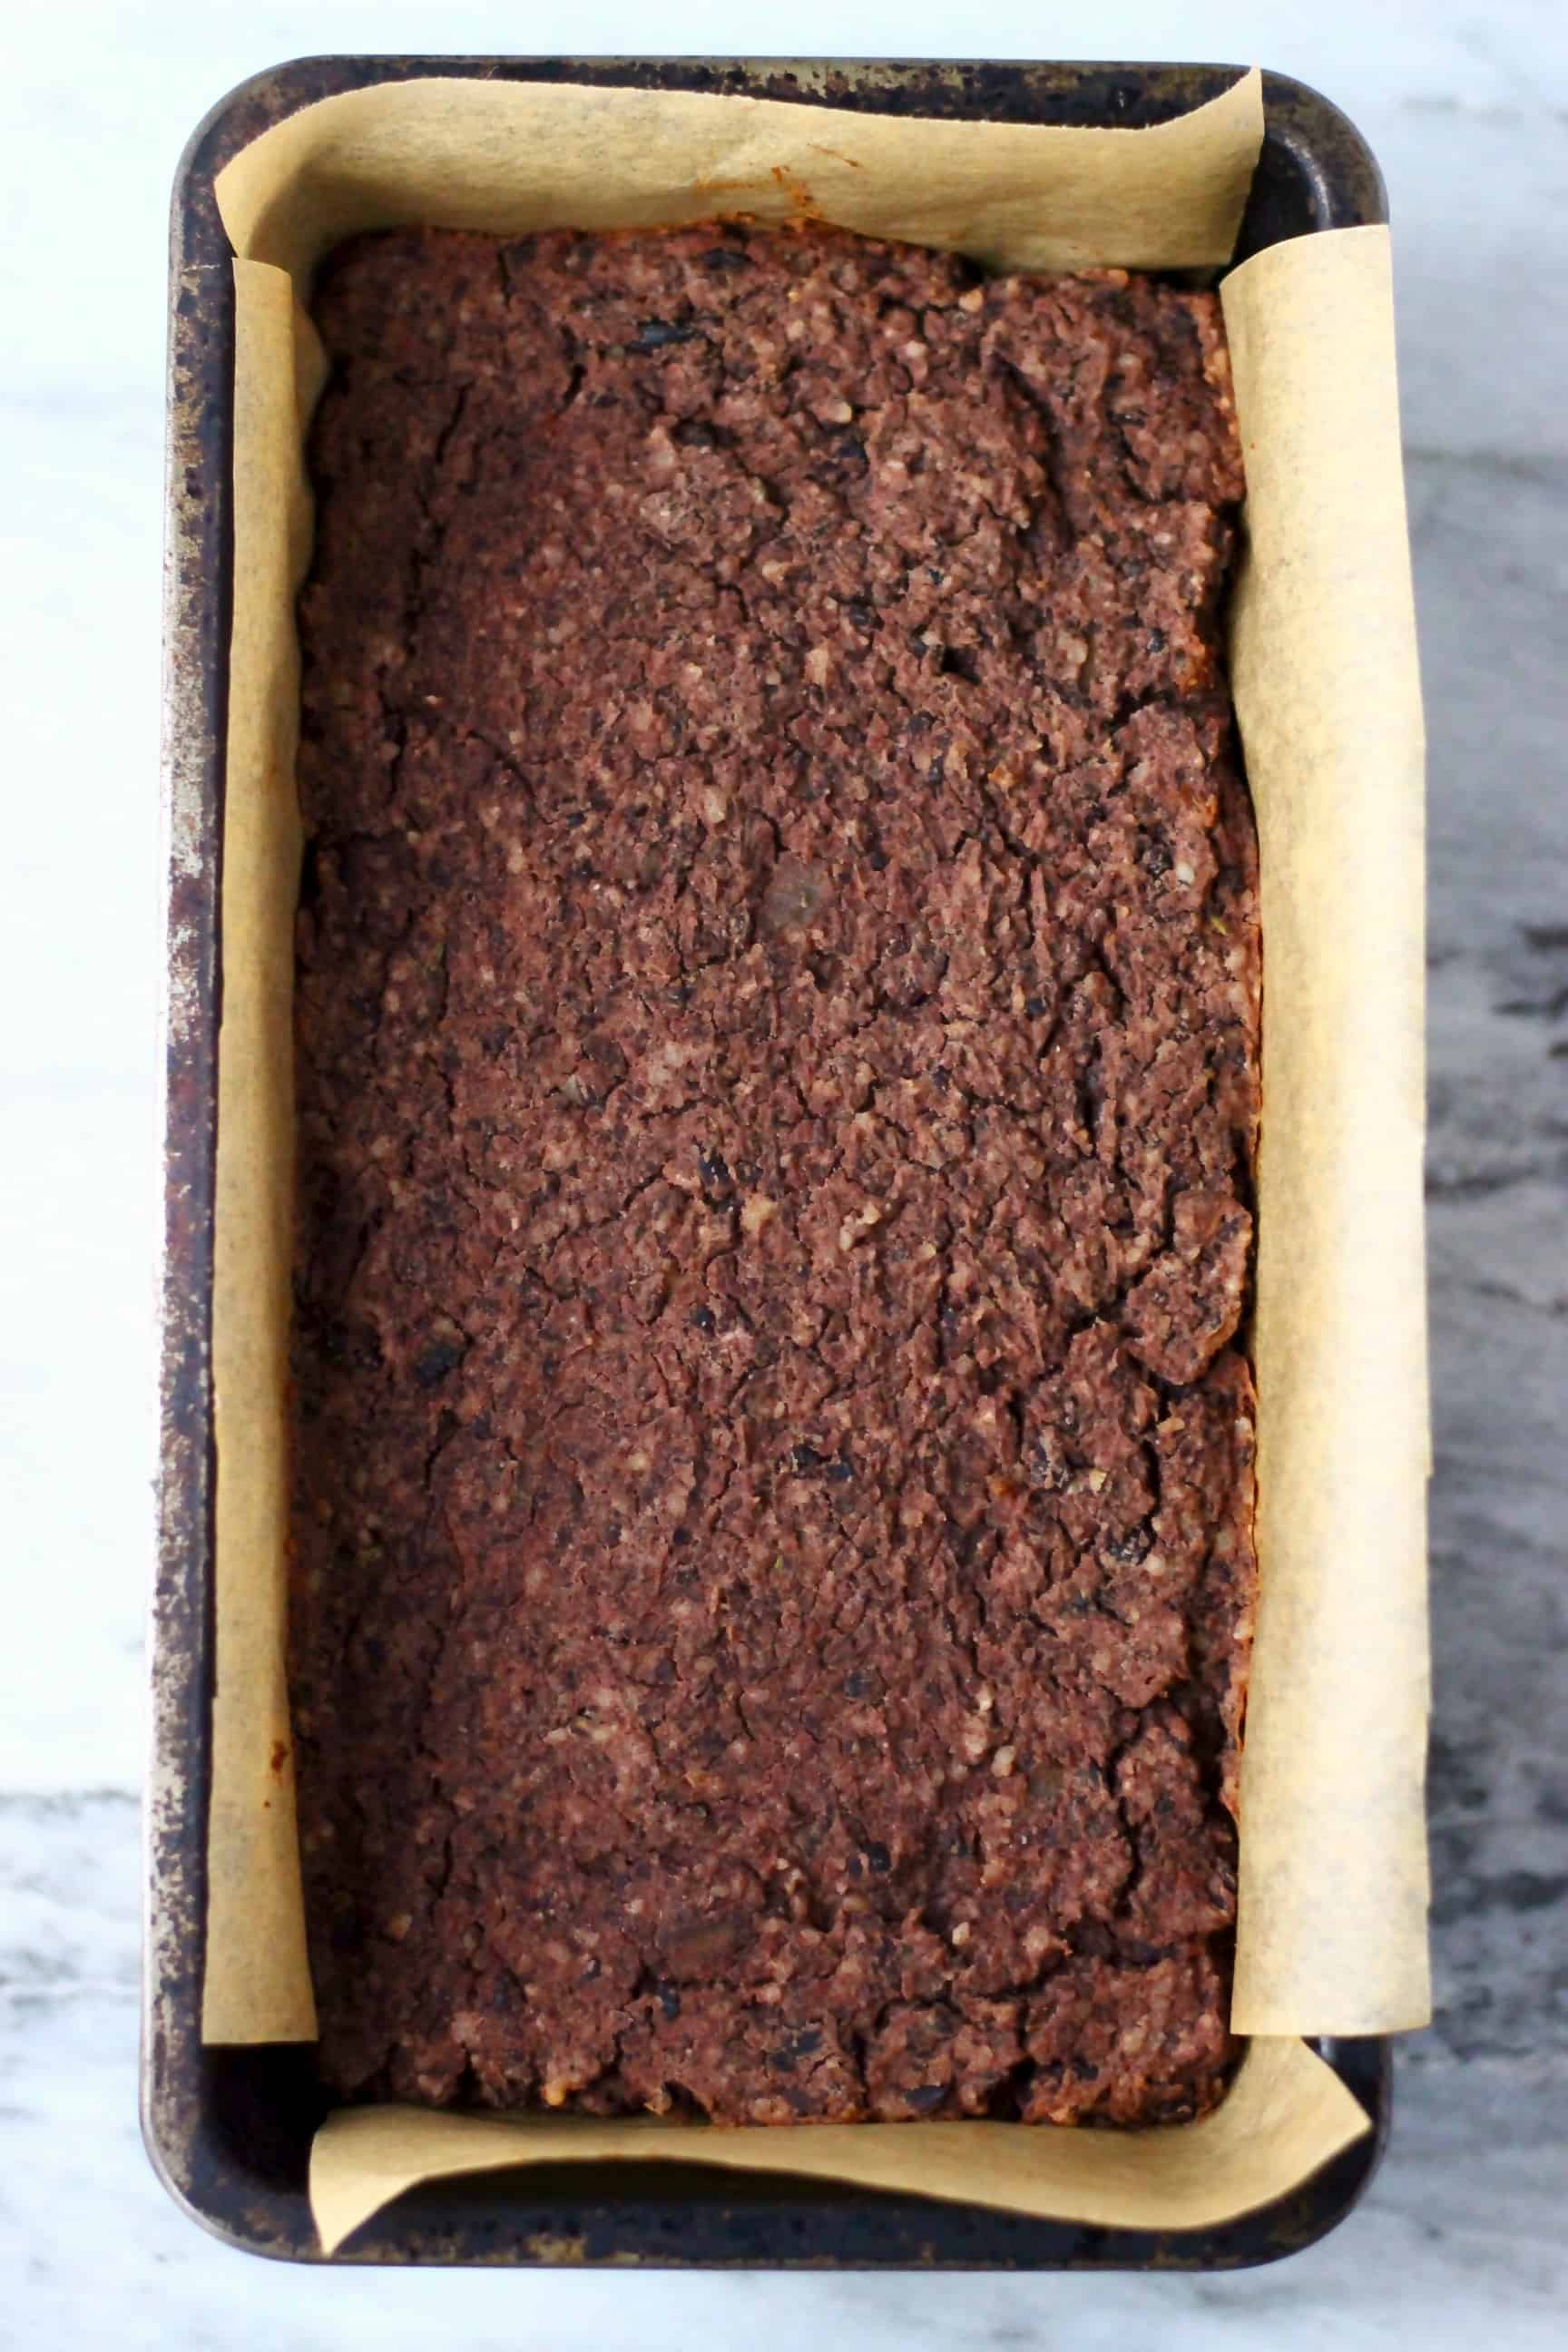 Cooked vegan black bean meatloaf in a loaf tin lined with baking paper